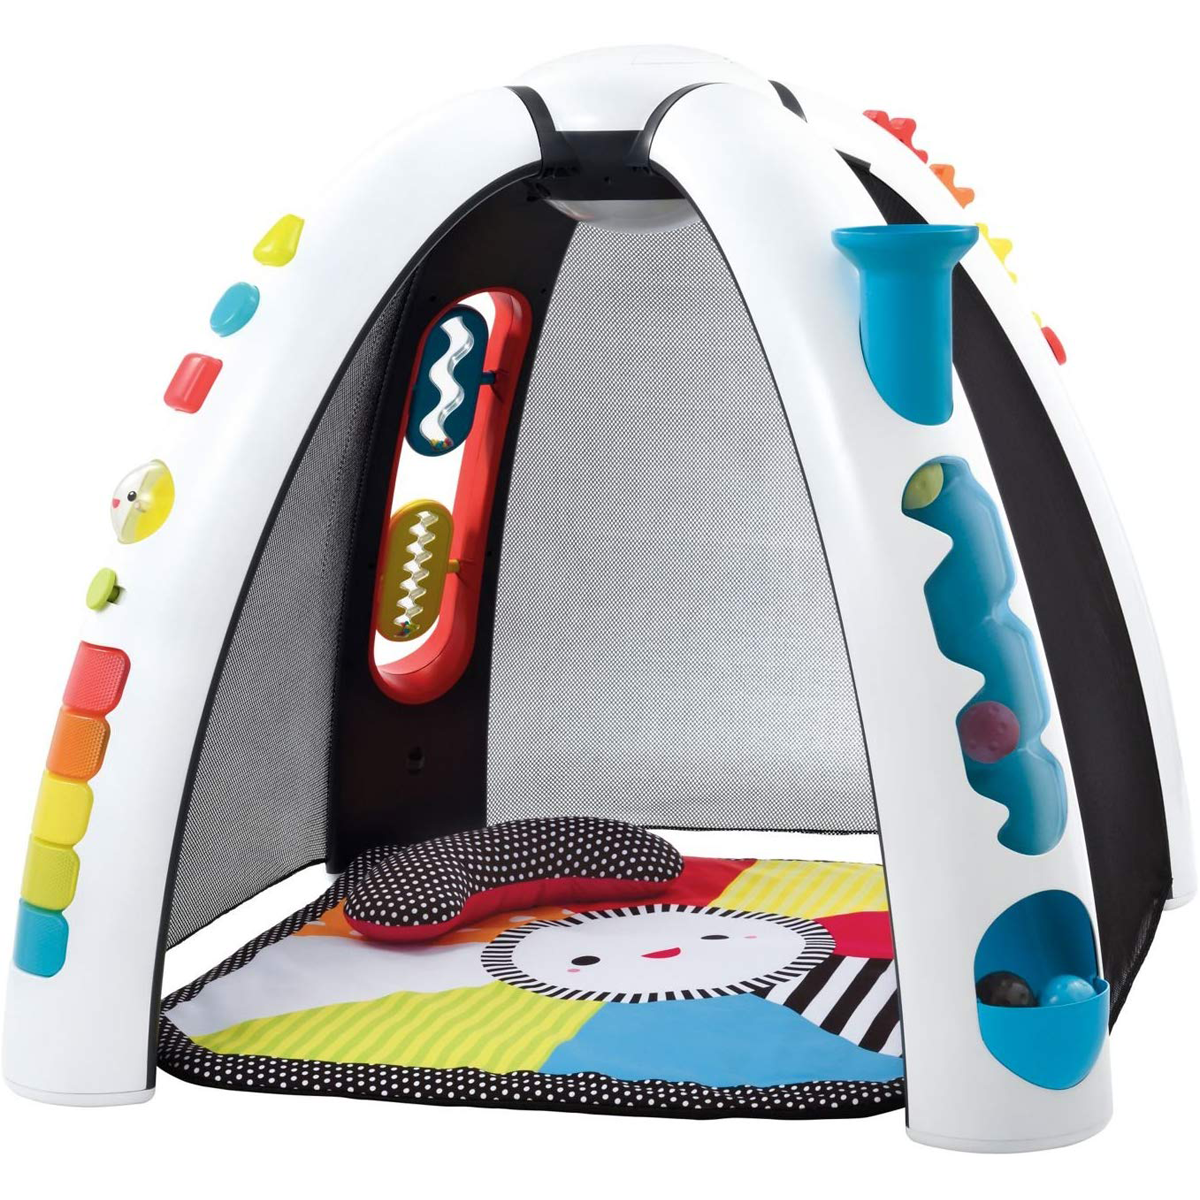 Little Senses Giant Lights And Sounds Activity Dome from Early Learning Center